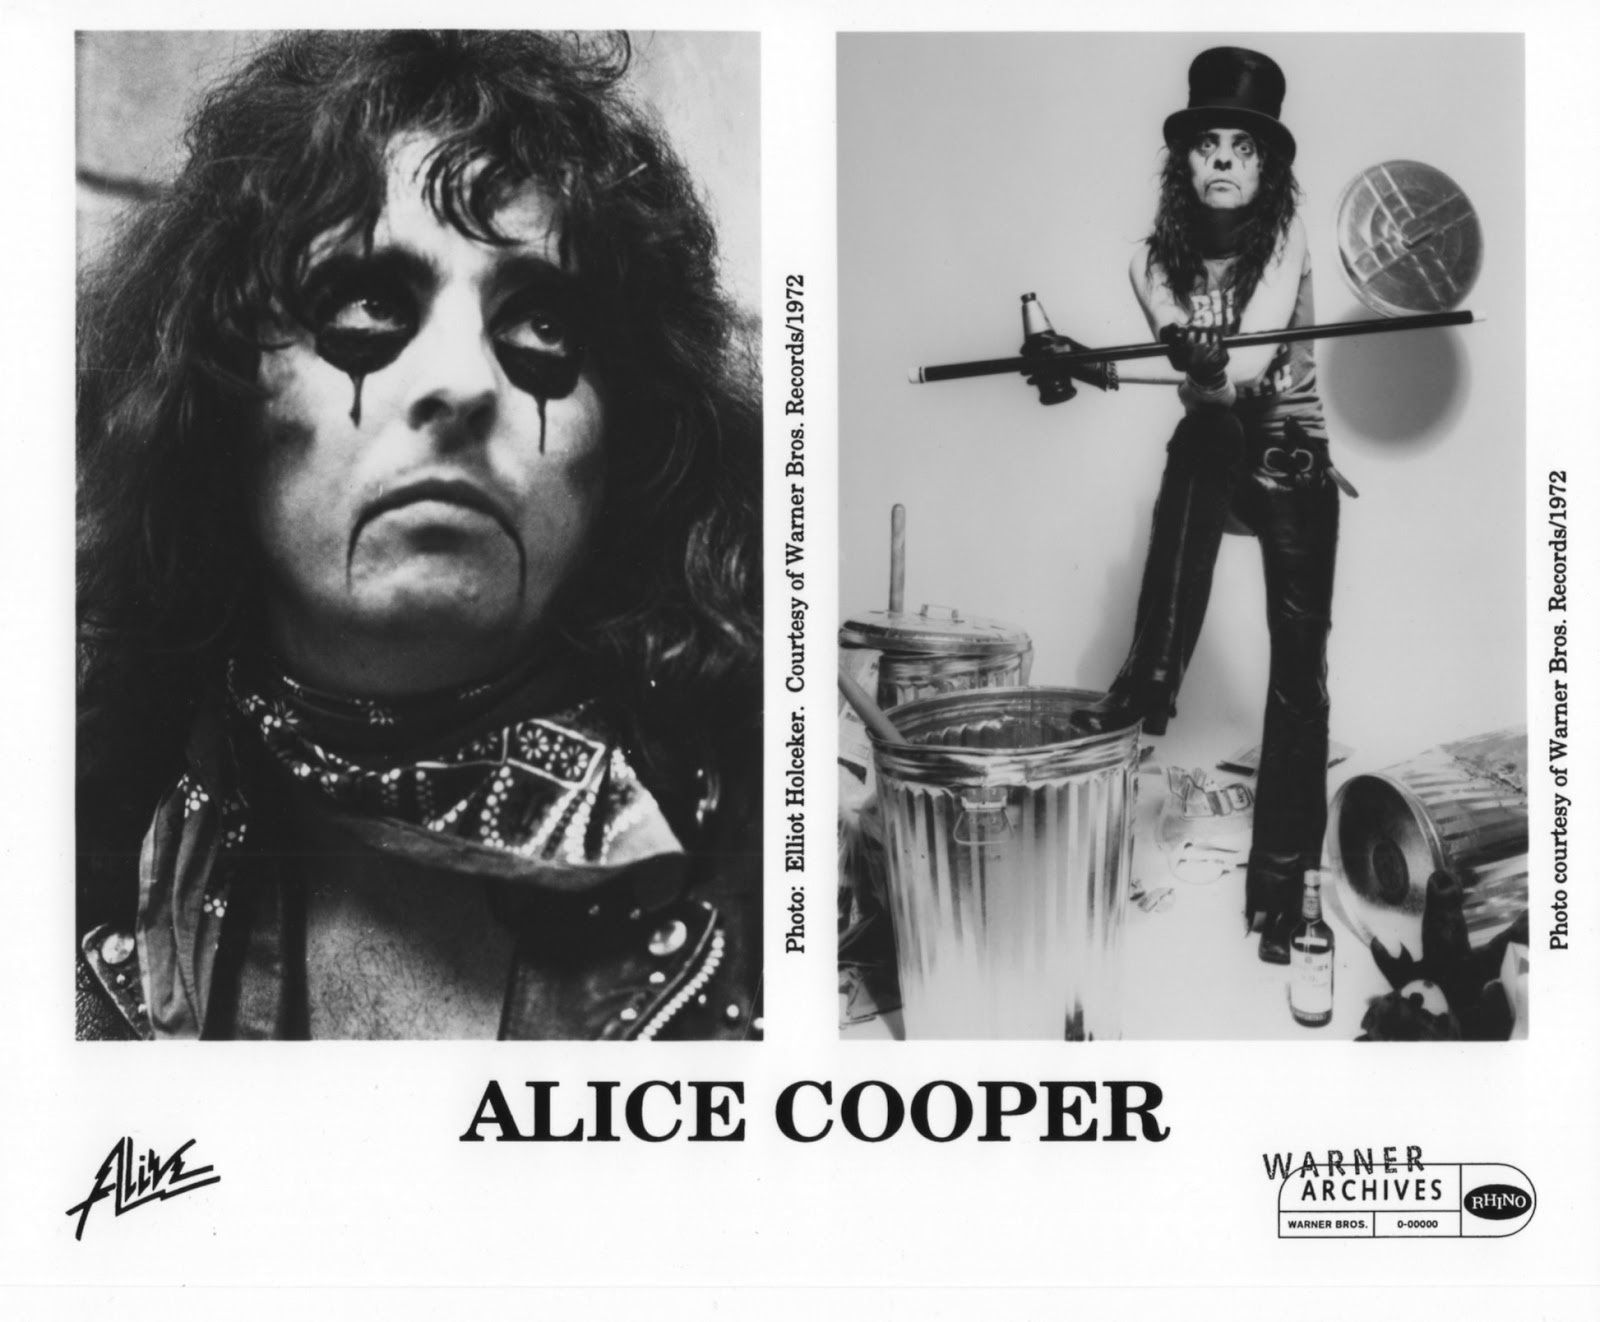 Alice Cooper, Warner Archives (1972)